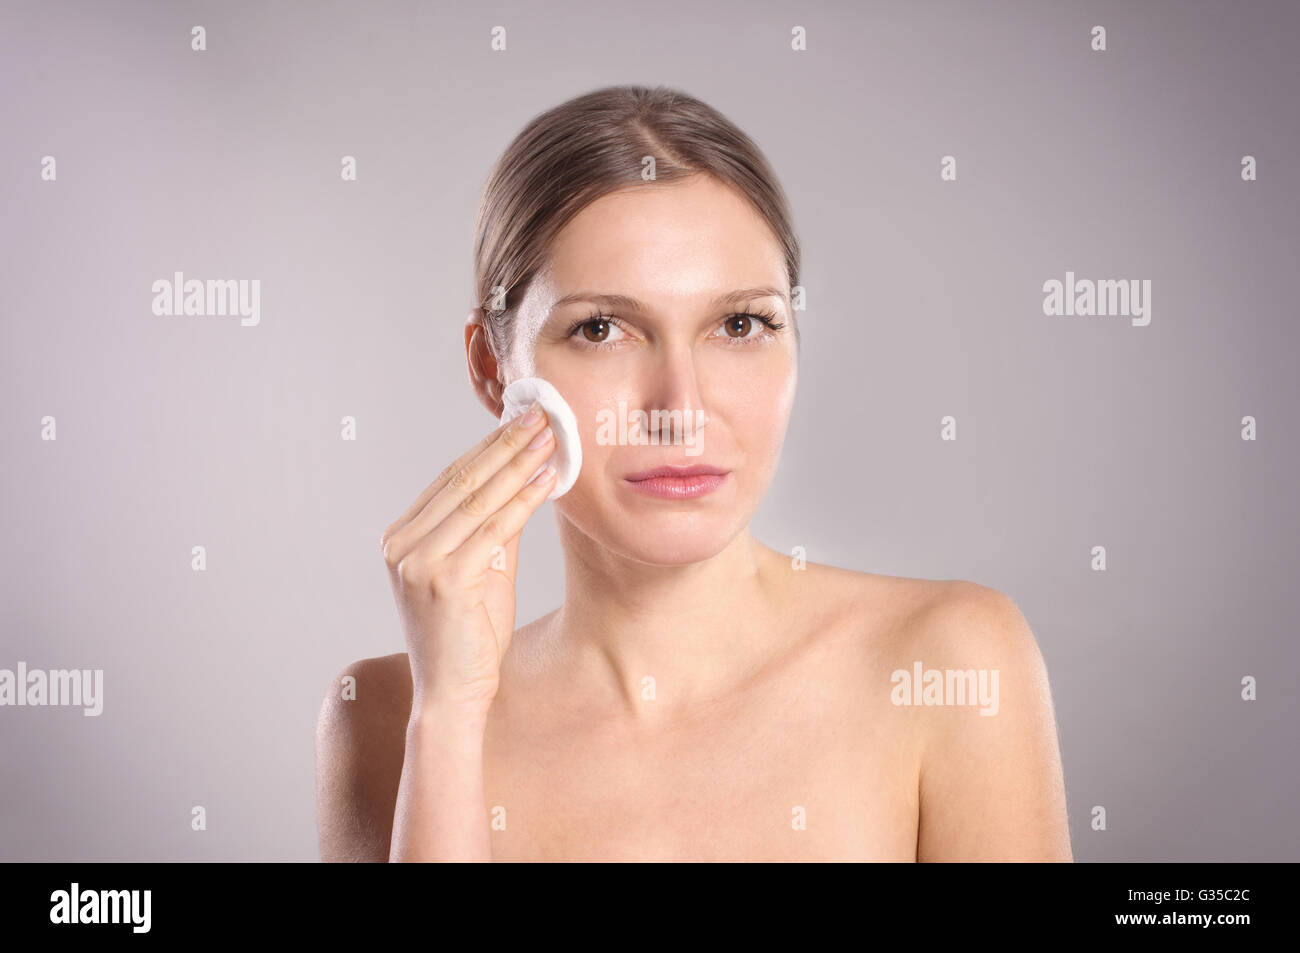 Beautiful woman cleaning her face with cotton swab - Stock Image